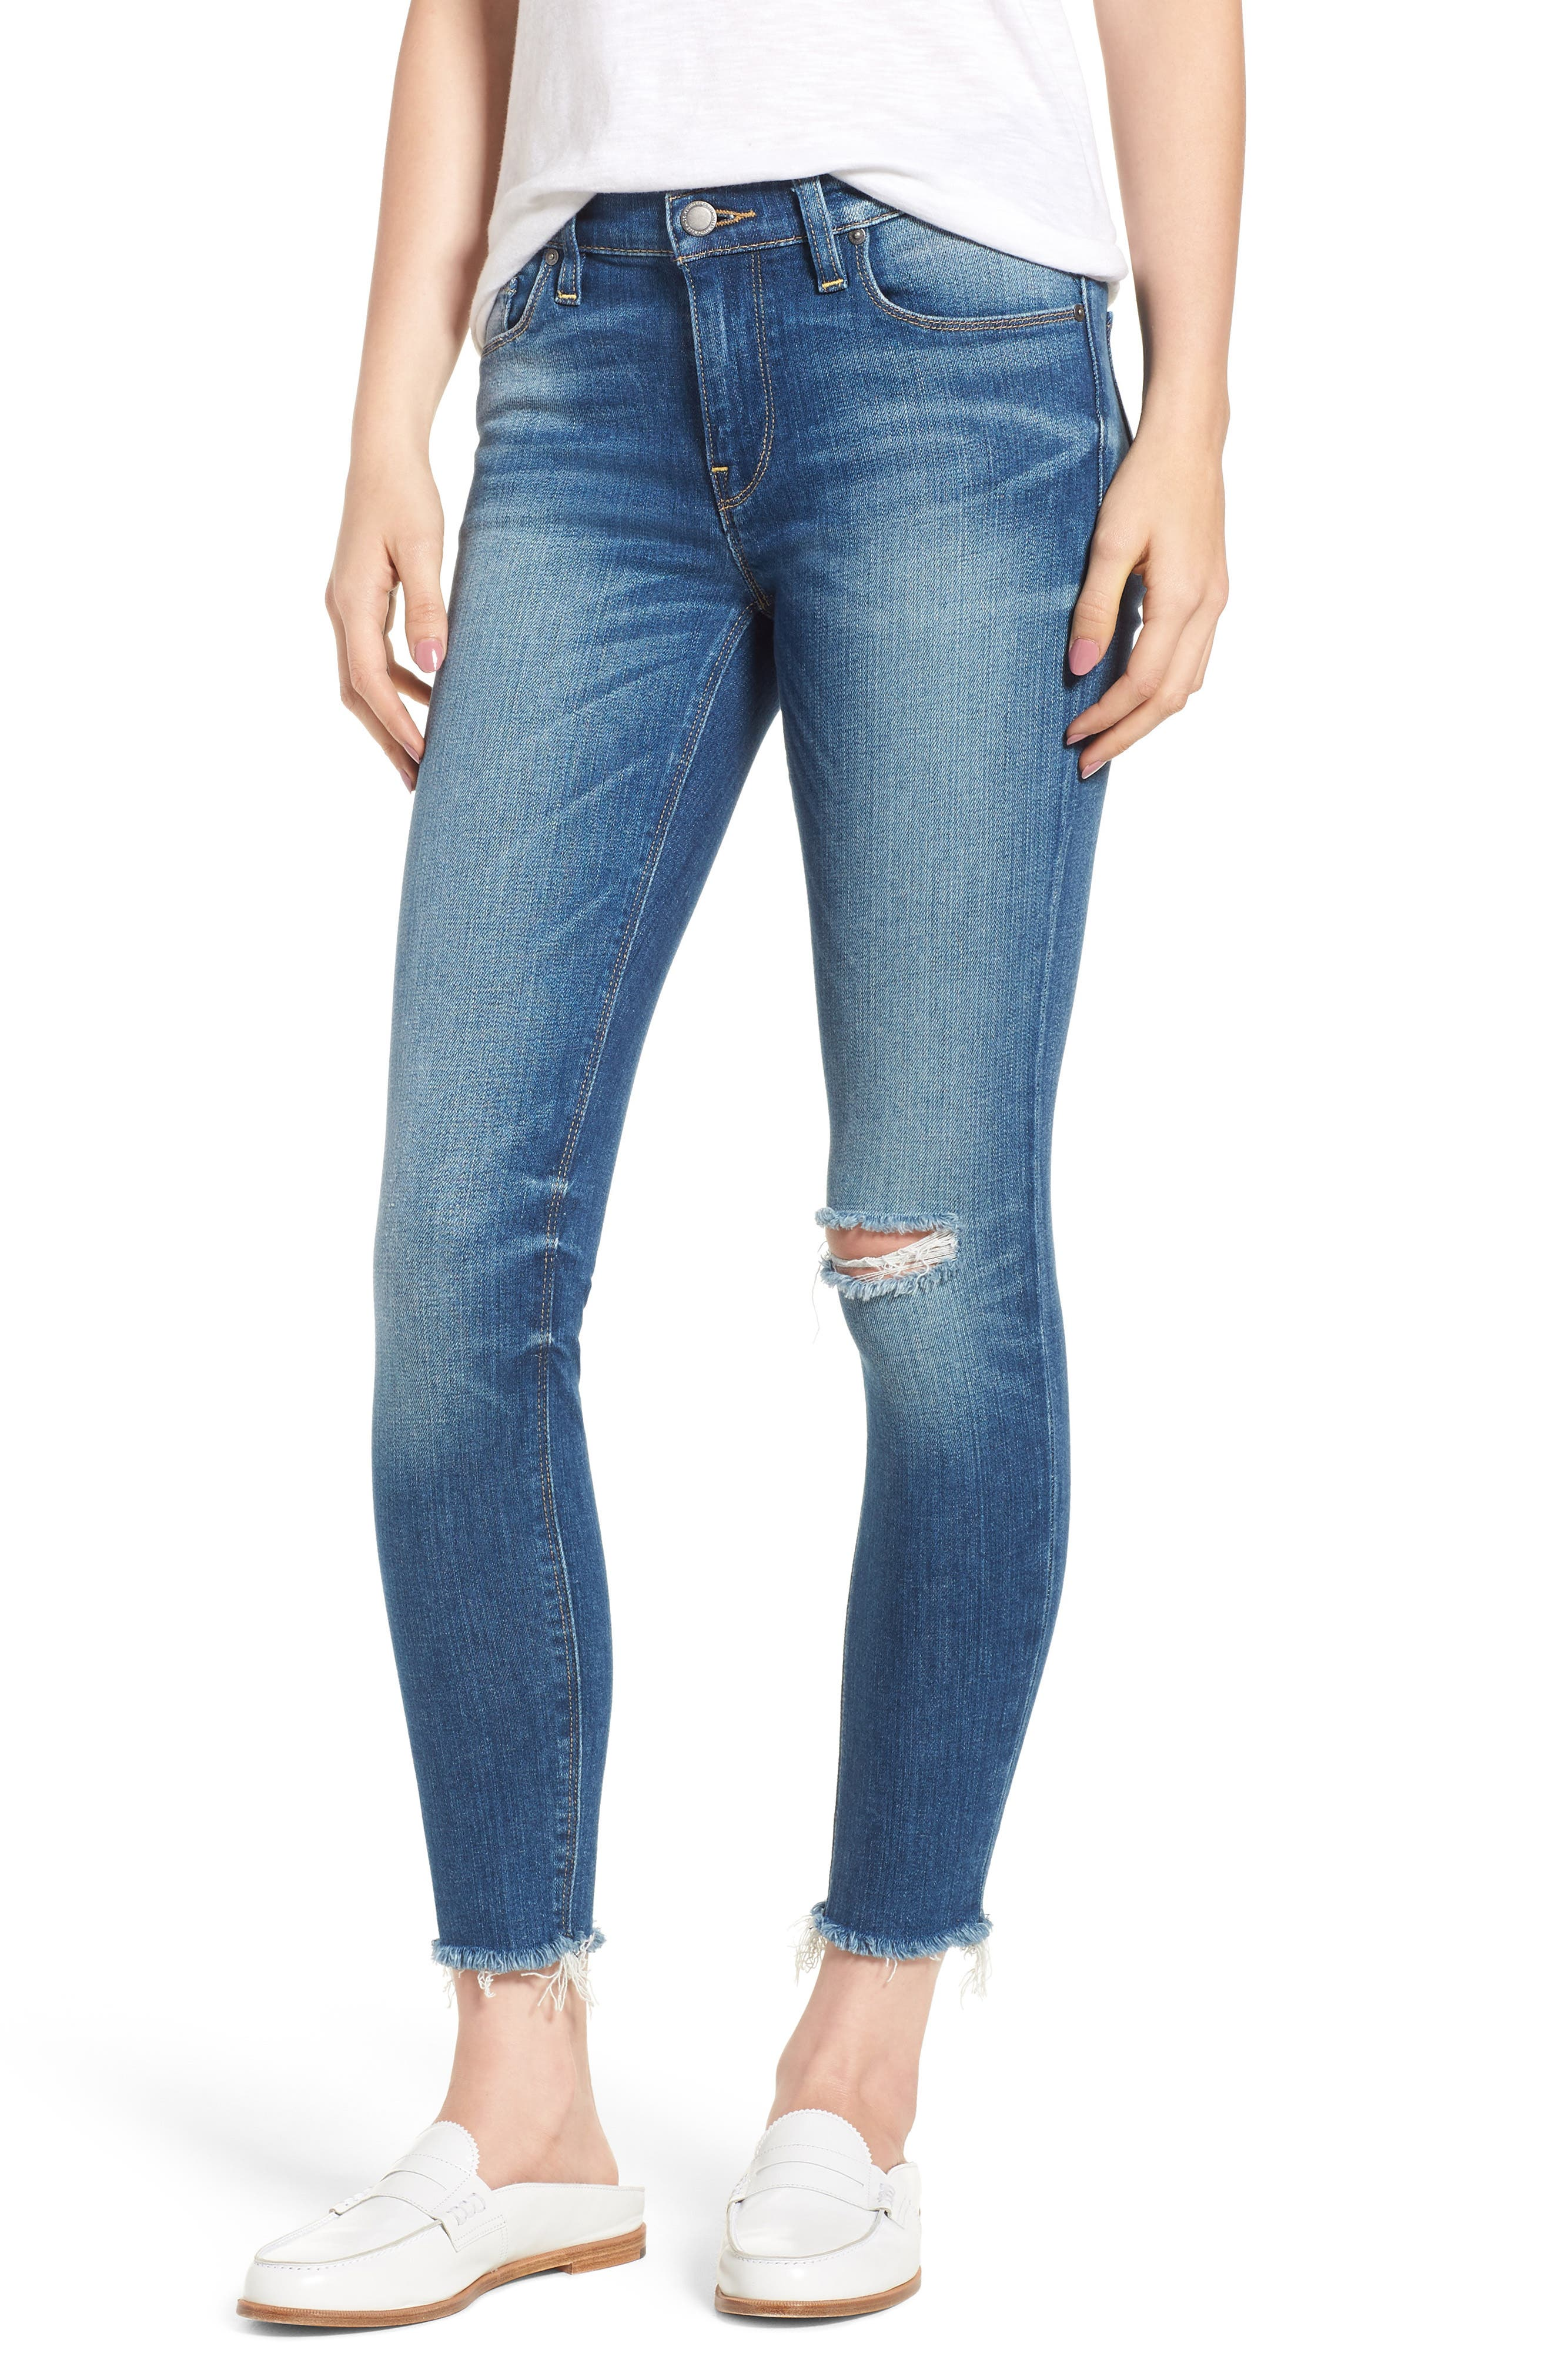 HUDSON Nico Mid Rise Frayed Ankle Skinny Jeans In Amar in Blue